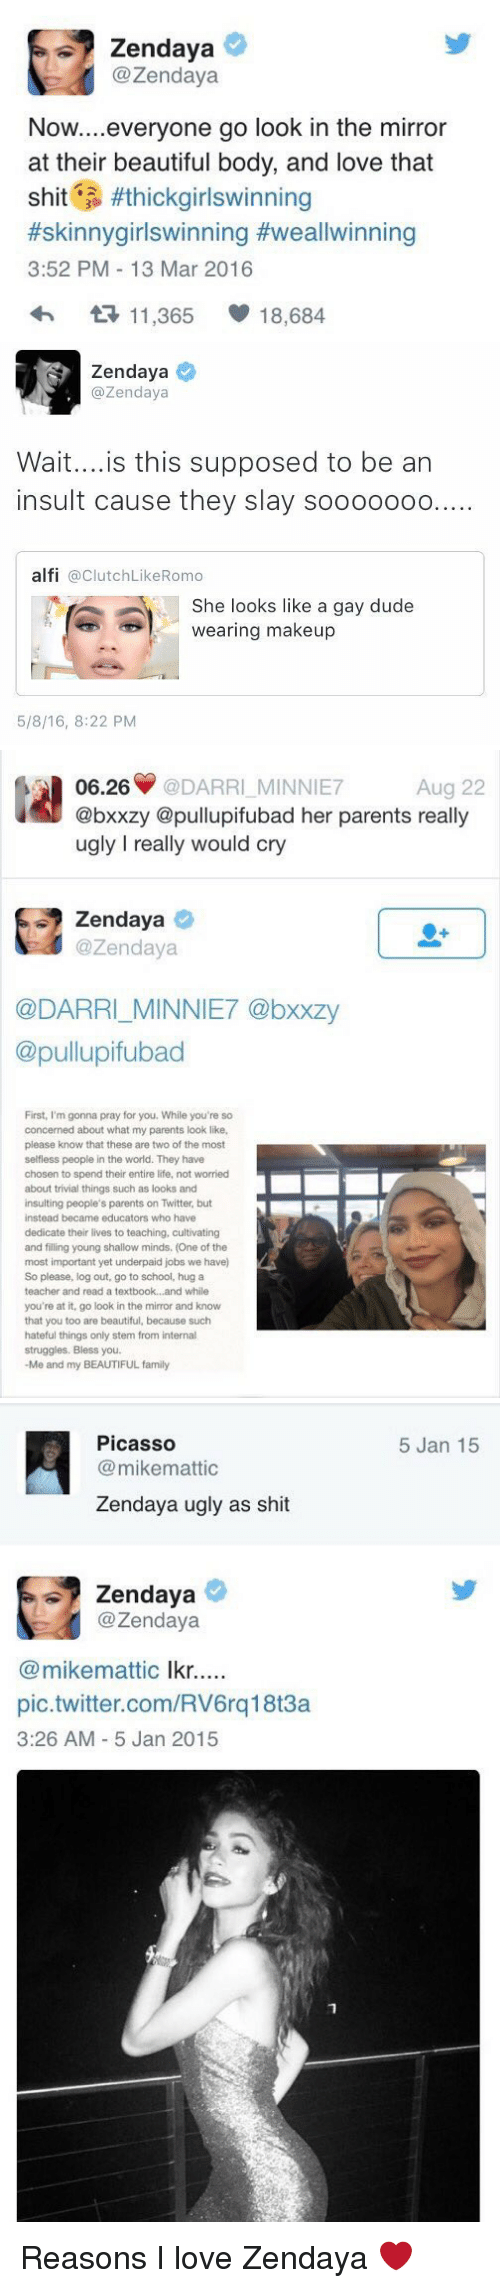 Hateness: Zendaya  @Zendaya  Now  everyone go look in the mirror  at their beautiful body, and love that  shit  #thick girlswinning  #skinnygirlswinning Hweallwinning  3:52 PM 13 Mar 2016  t 11,365  18,684   Zendaya  azendaya  Wait... is this supposed to be an  insult cause they slay sooooooo....  alfi  a Clutch LikeRomo  She looks like a gay dude  wearing makeup  5/8/16, 8:22 PM   06.26  @DARRI MINNIE7  Aug 22  @bxxzy @pullupifubad her parents really  ugly really would cry  Zendaya  azen daya  @DARRI MINNIE7 @bxxzy  @pullupifubad  First, I'm gonna pray for you. While you're so  concerned about what my parents look like,  please know that these are two of the most  selfless people in the world. They have  chosen to spend their entire life, not worried  about trivial things such as looks and  insulting people's parents on Twitter, but  instead became educators who have  dedicate their lives to teaching, cultivating  and filling young shallow minds. (One of the  most important yet underpaid jobs we have)  So please, log out, go to school, hug a  teacher and read a textbook...and while  you're at it, go look in the mirror and know  that you too are beautiful, because such  hateful things only stem from internal  struggles. Bless you.  -Me and my BEAUTIFUL family   Picasso  mikemattic  Zendaya ugly as shit  Zendaya  @Zendaya  (a mikemattic  lkr  pic.twitter.com/RV6rq18t3a  3:26 AM 5 Jan 2015  5 Jan 15 Reasons I love Zendaya ❤️